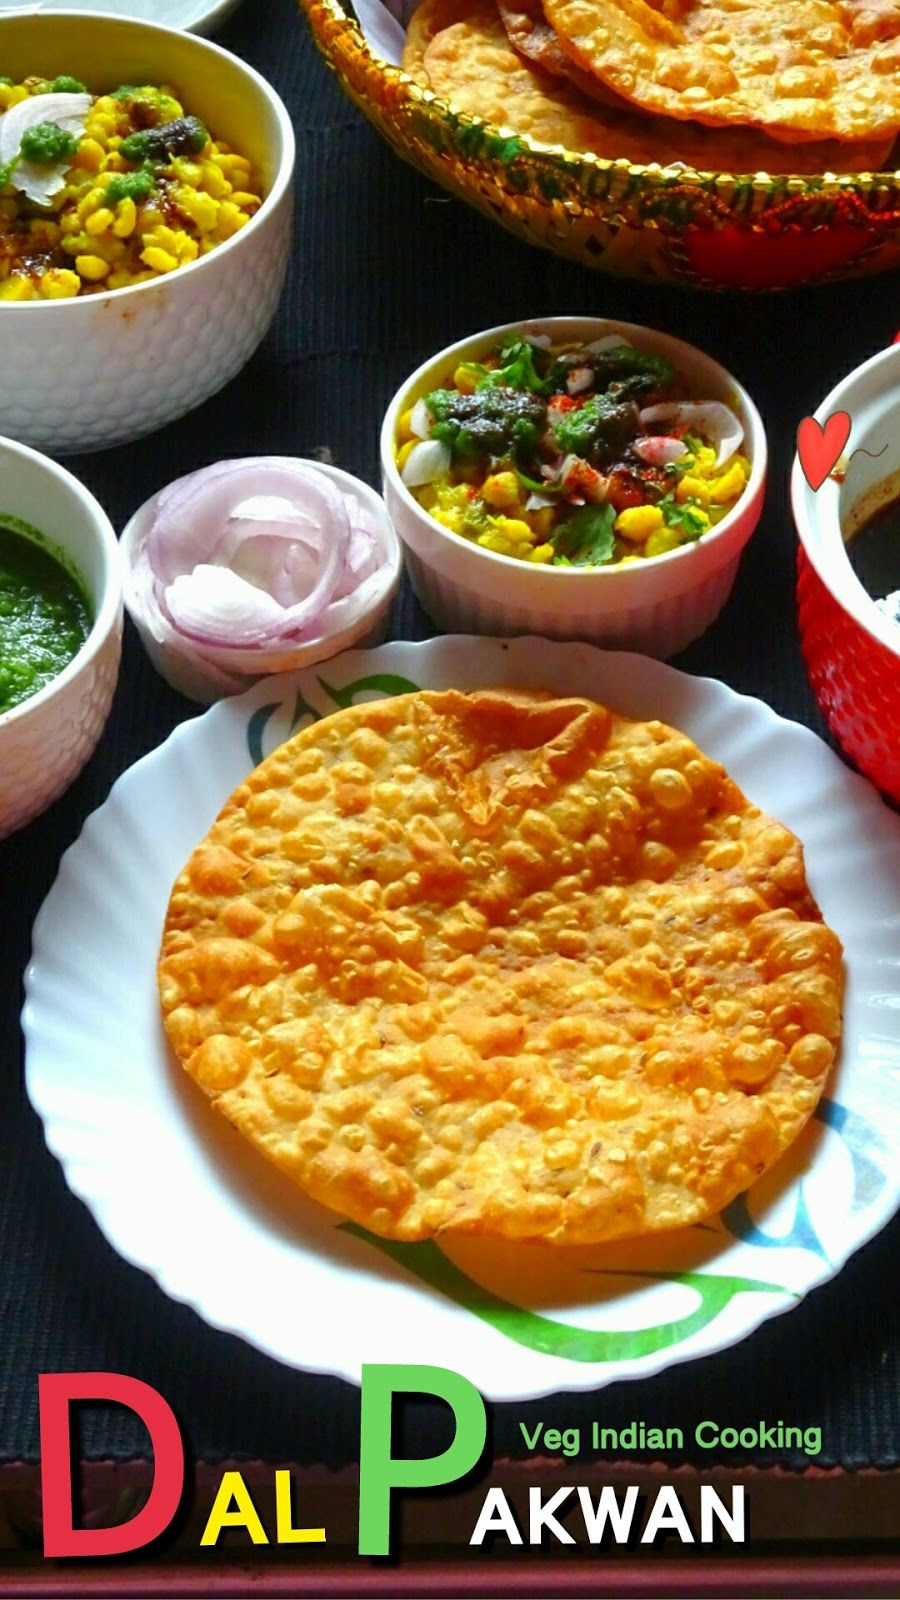 Sindhi dal pakwan recipe all recipes pinterest recipes sindhi dal pakwan recipe forumfinder Image collections